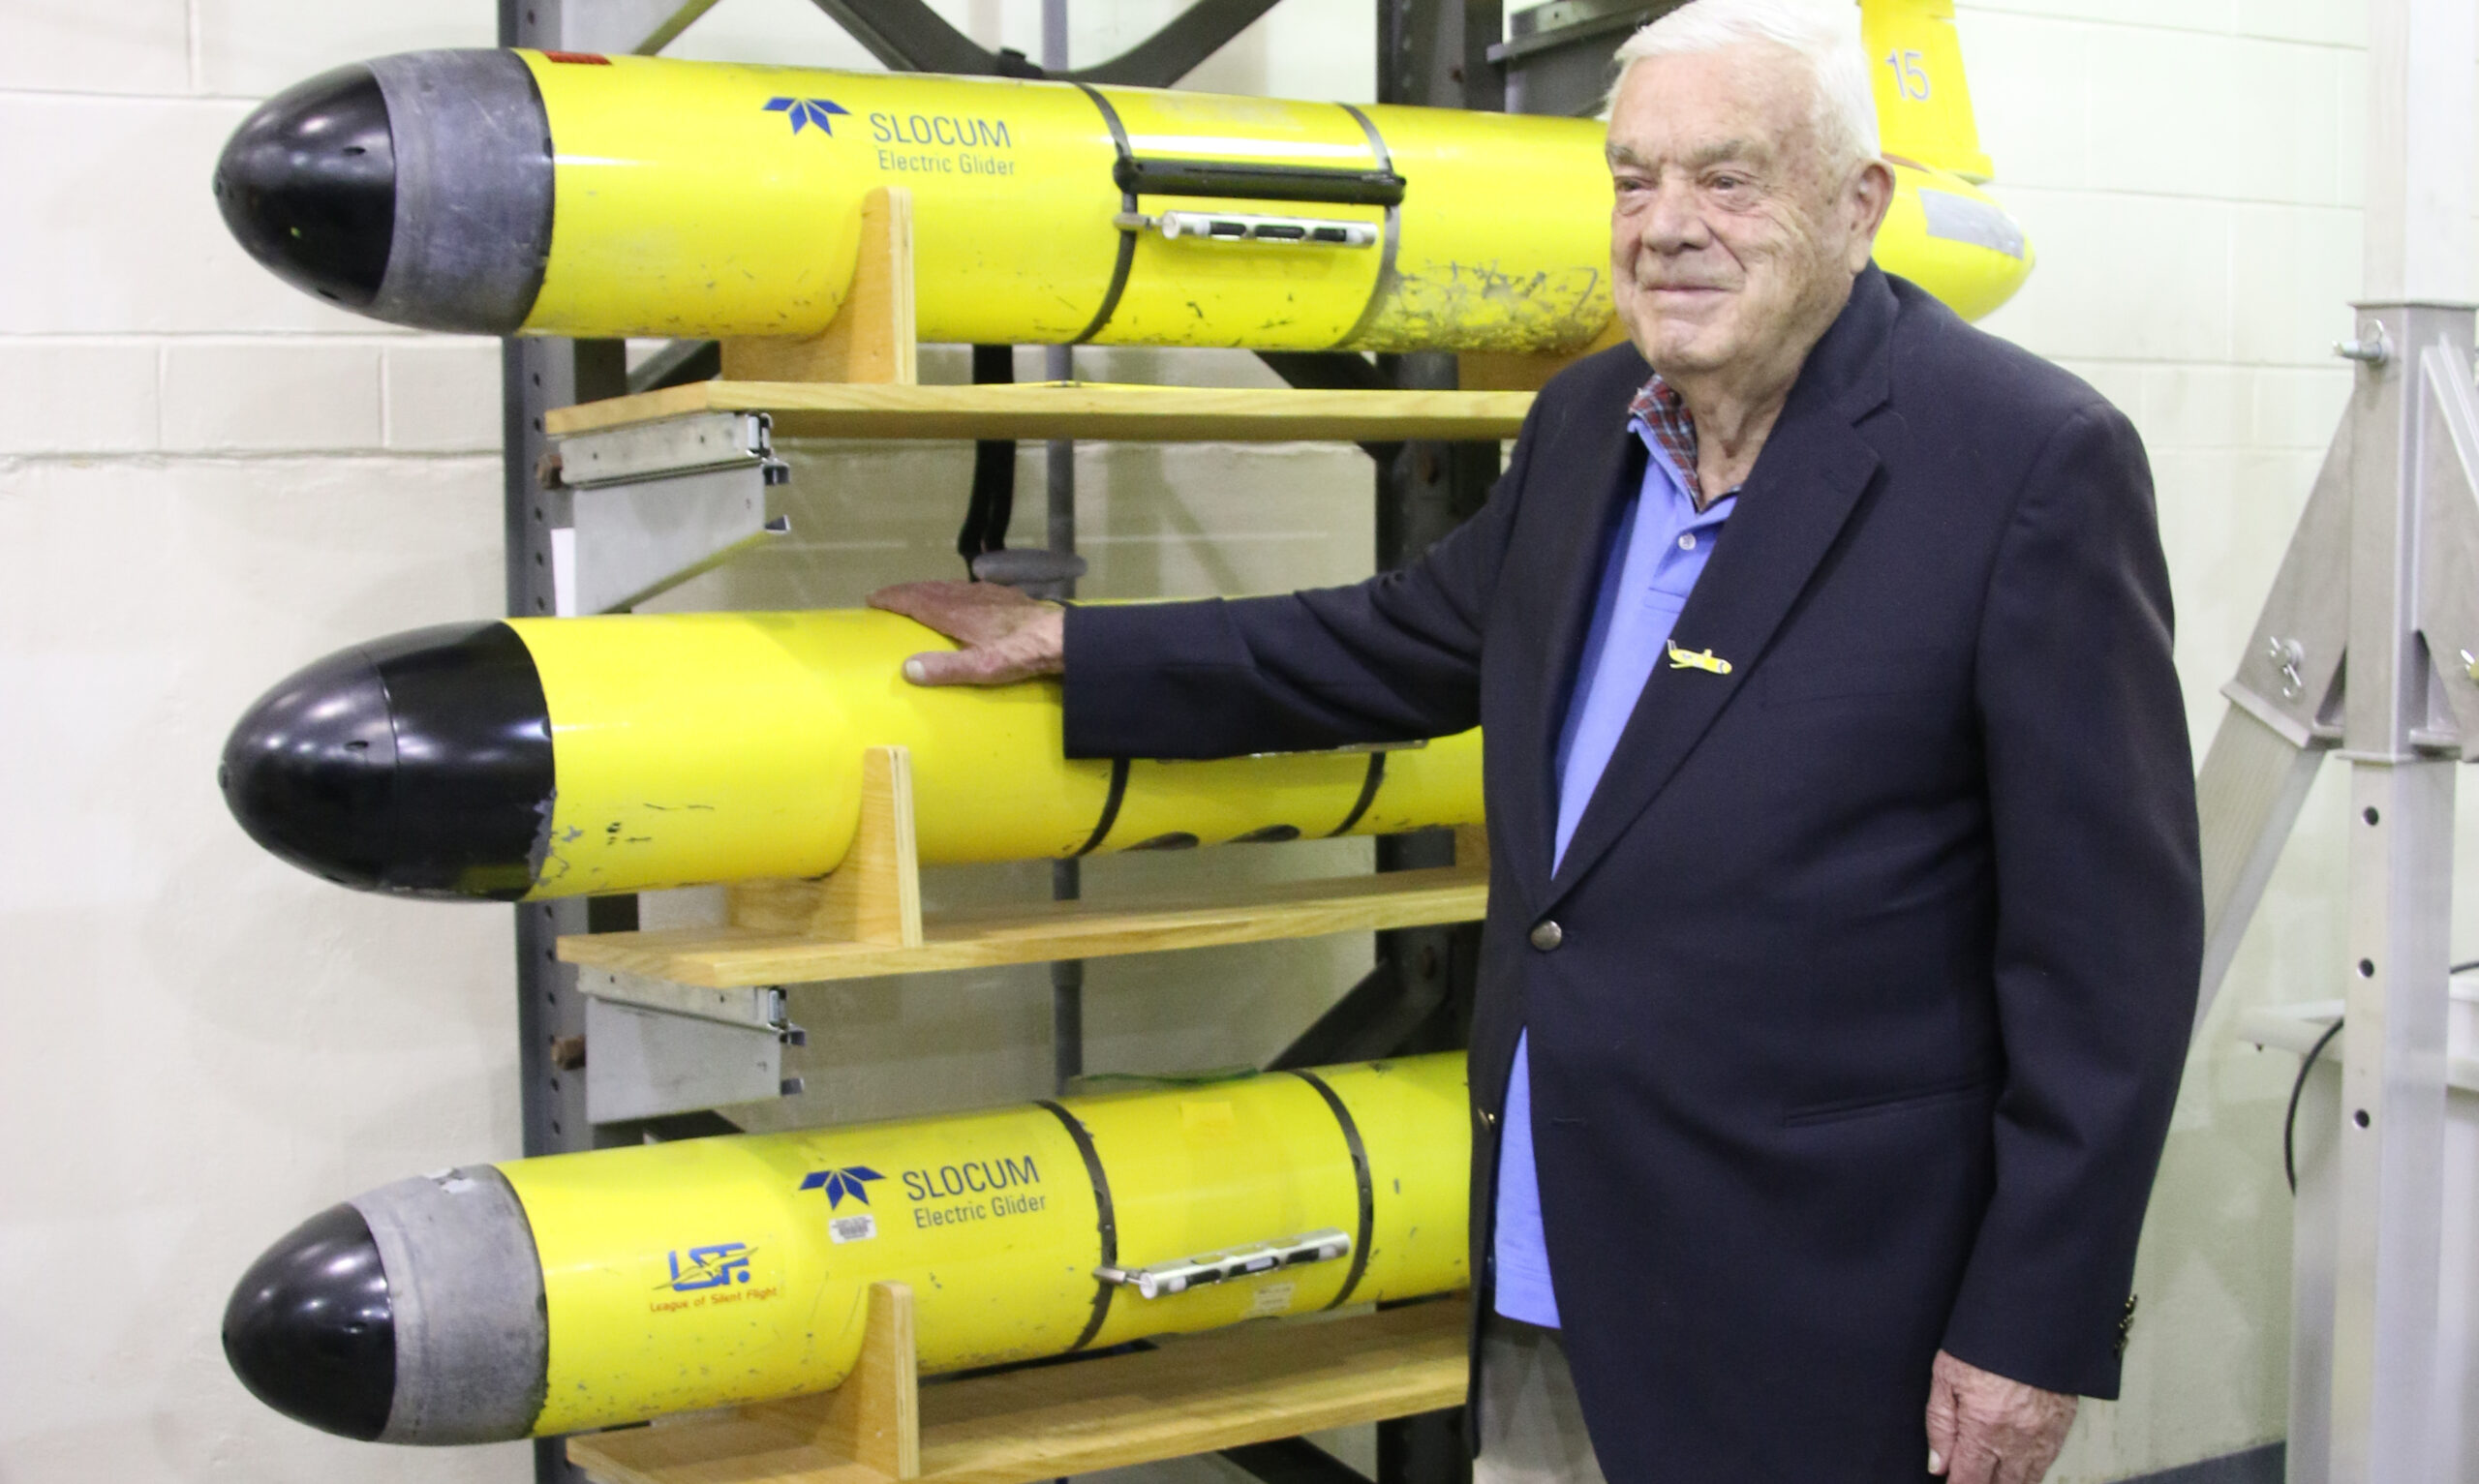 WHOI Appoints Douglas C. Webb as Oceanographer Emeritus